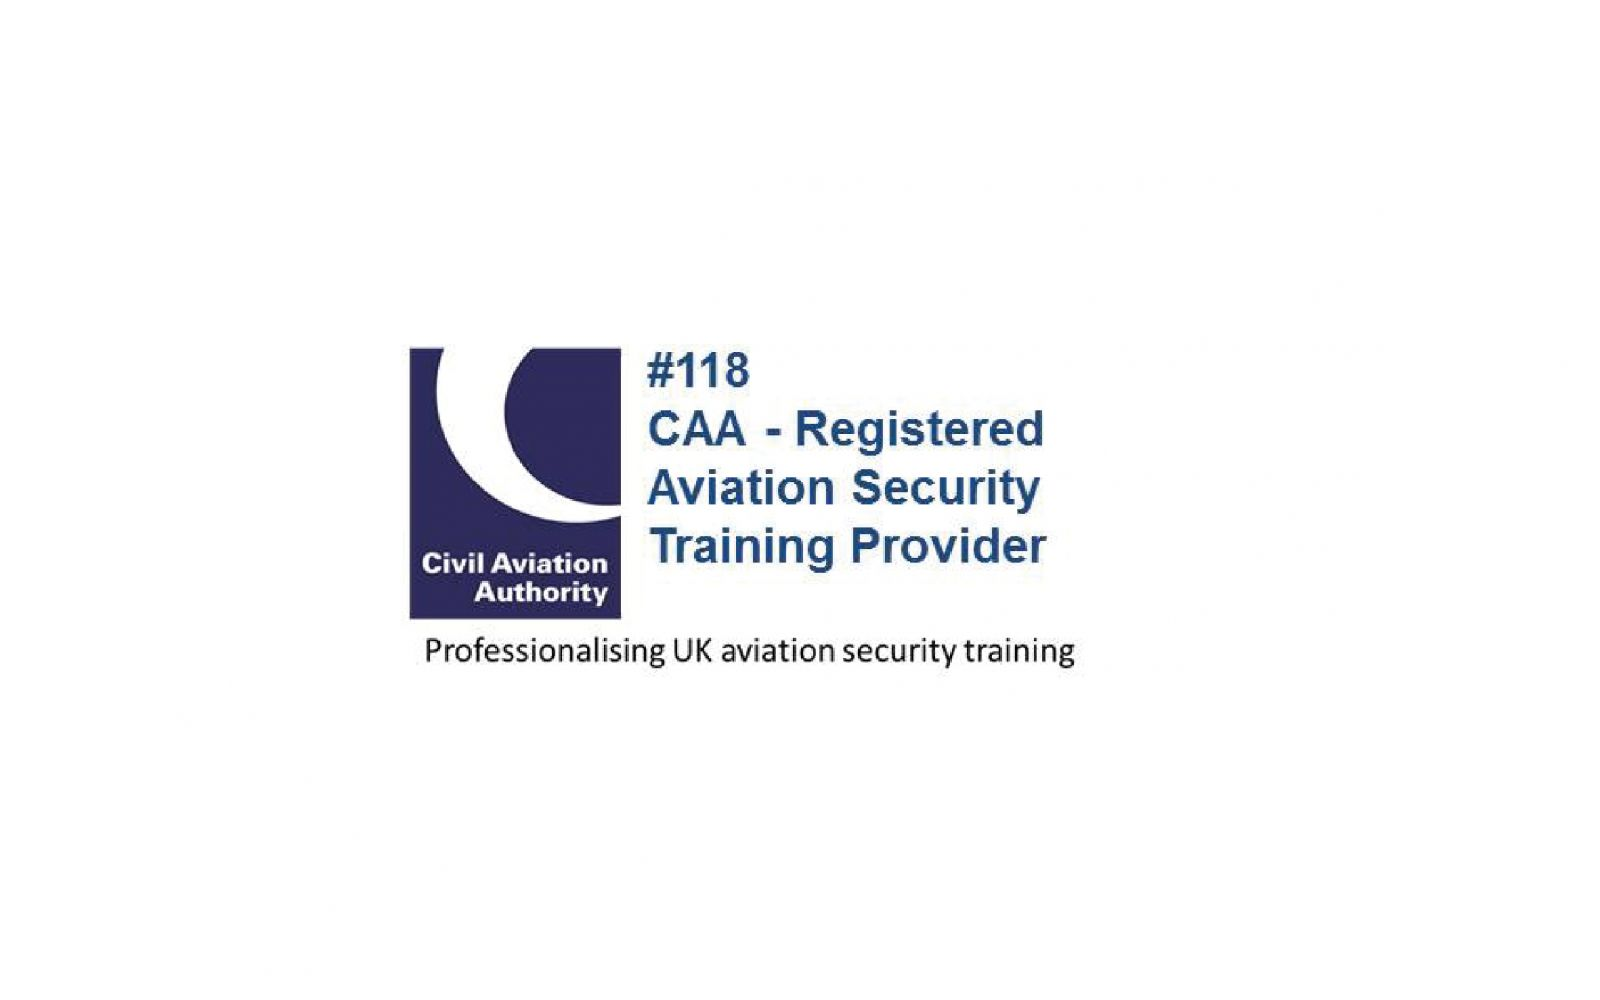 ICTS UK & Ireland's Aviation Security Training Provision classed as Outstanding